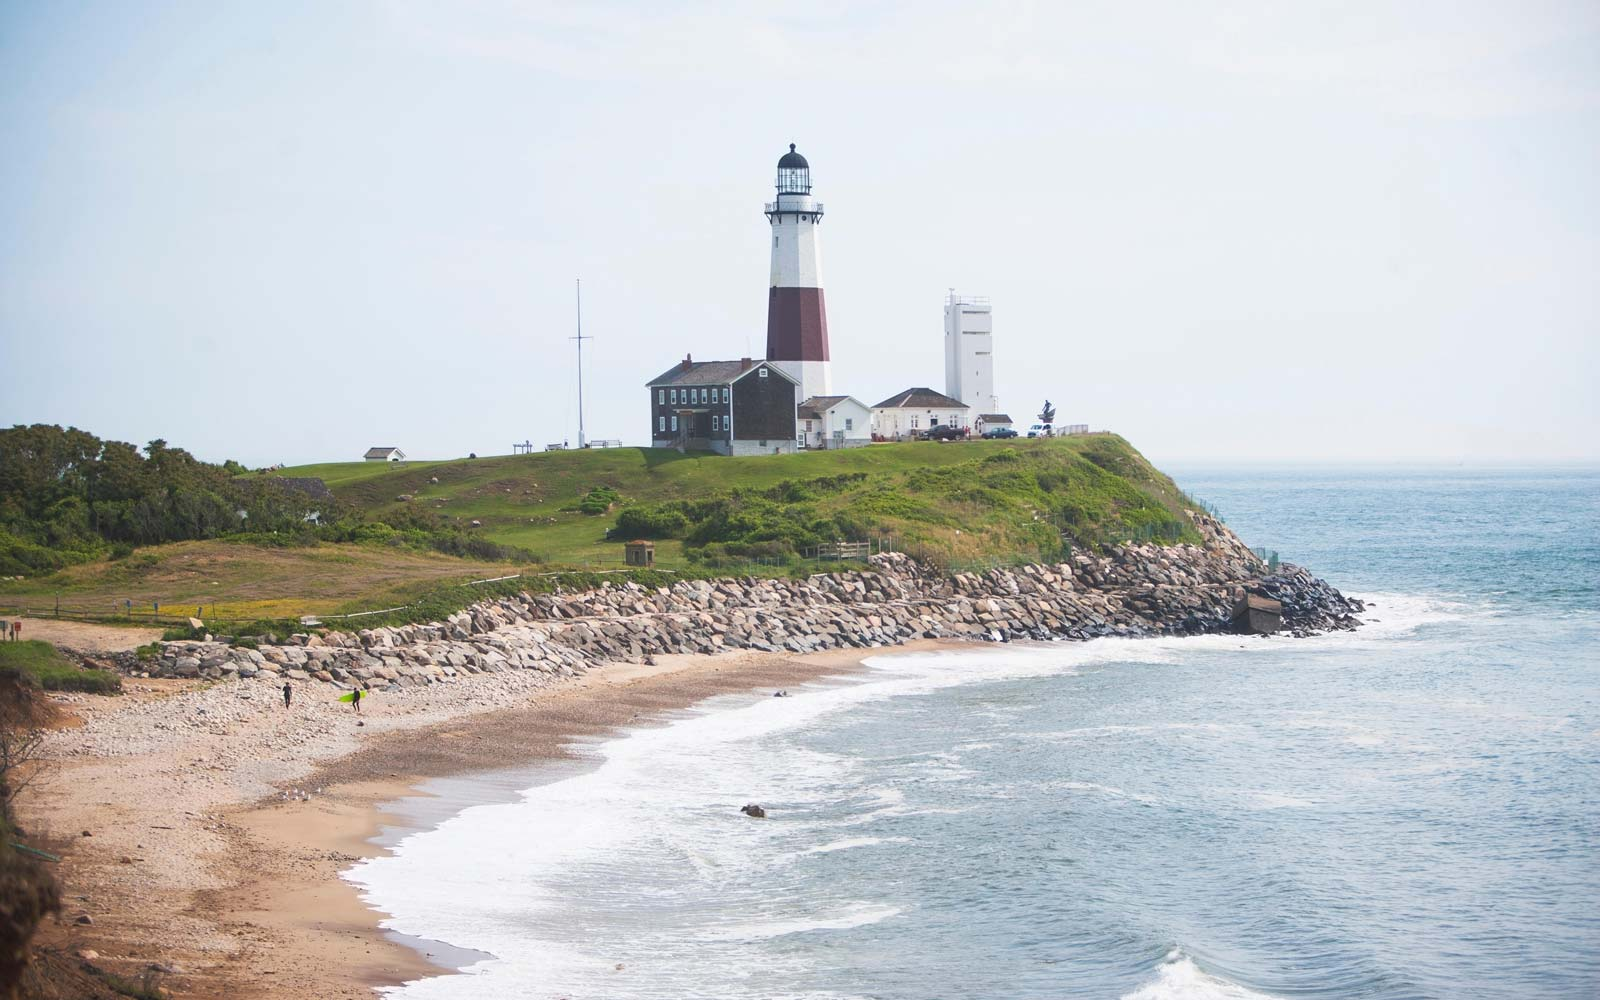 These Are the Top 10 Most Expensive Beach Towns in the U.S.